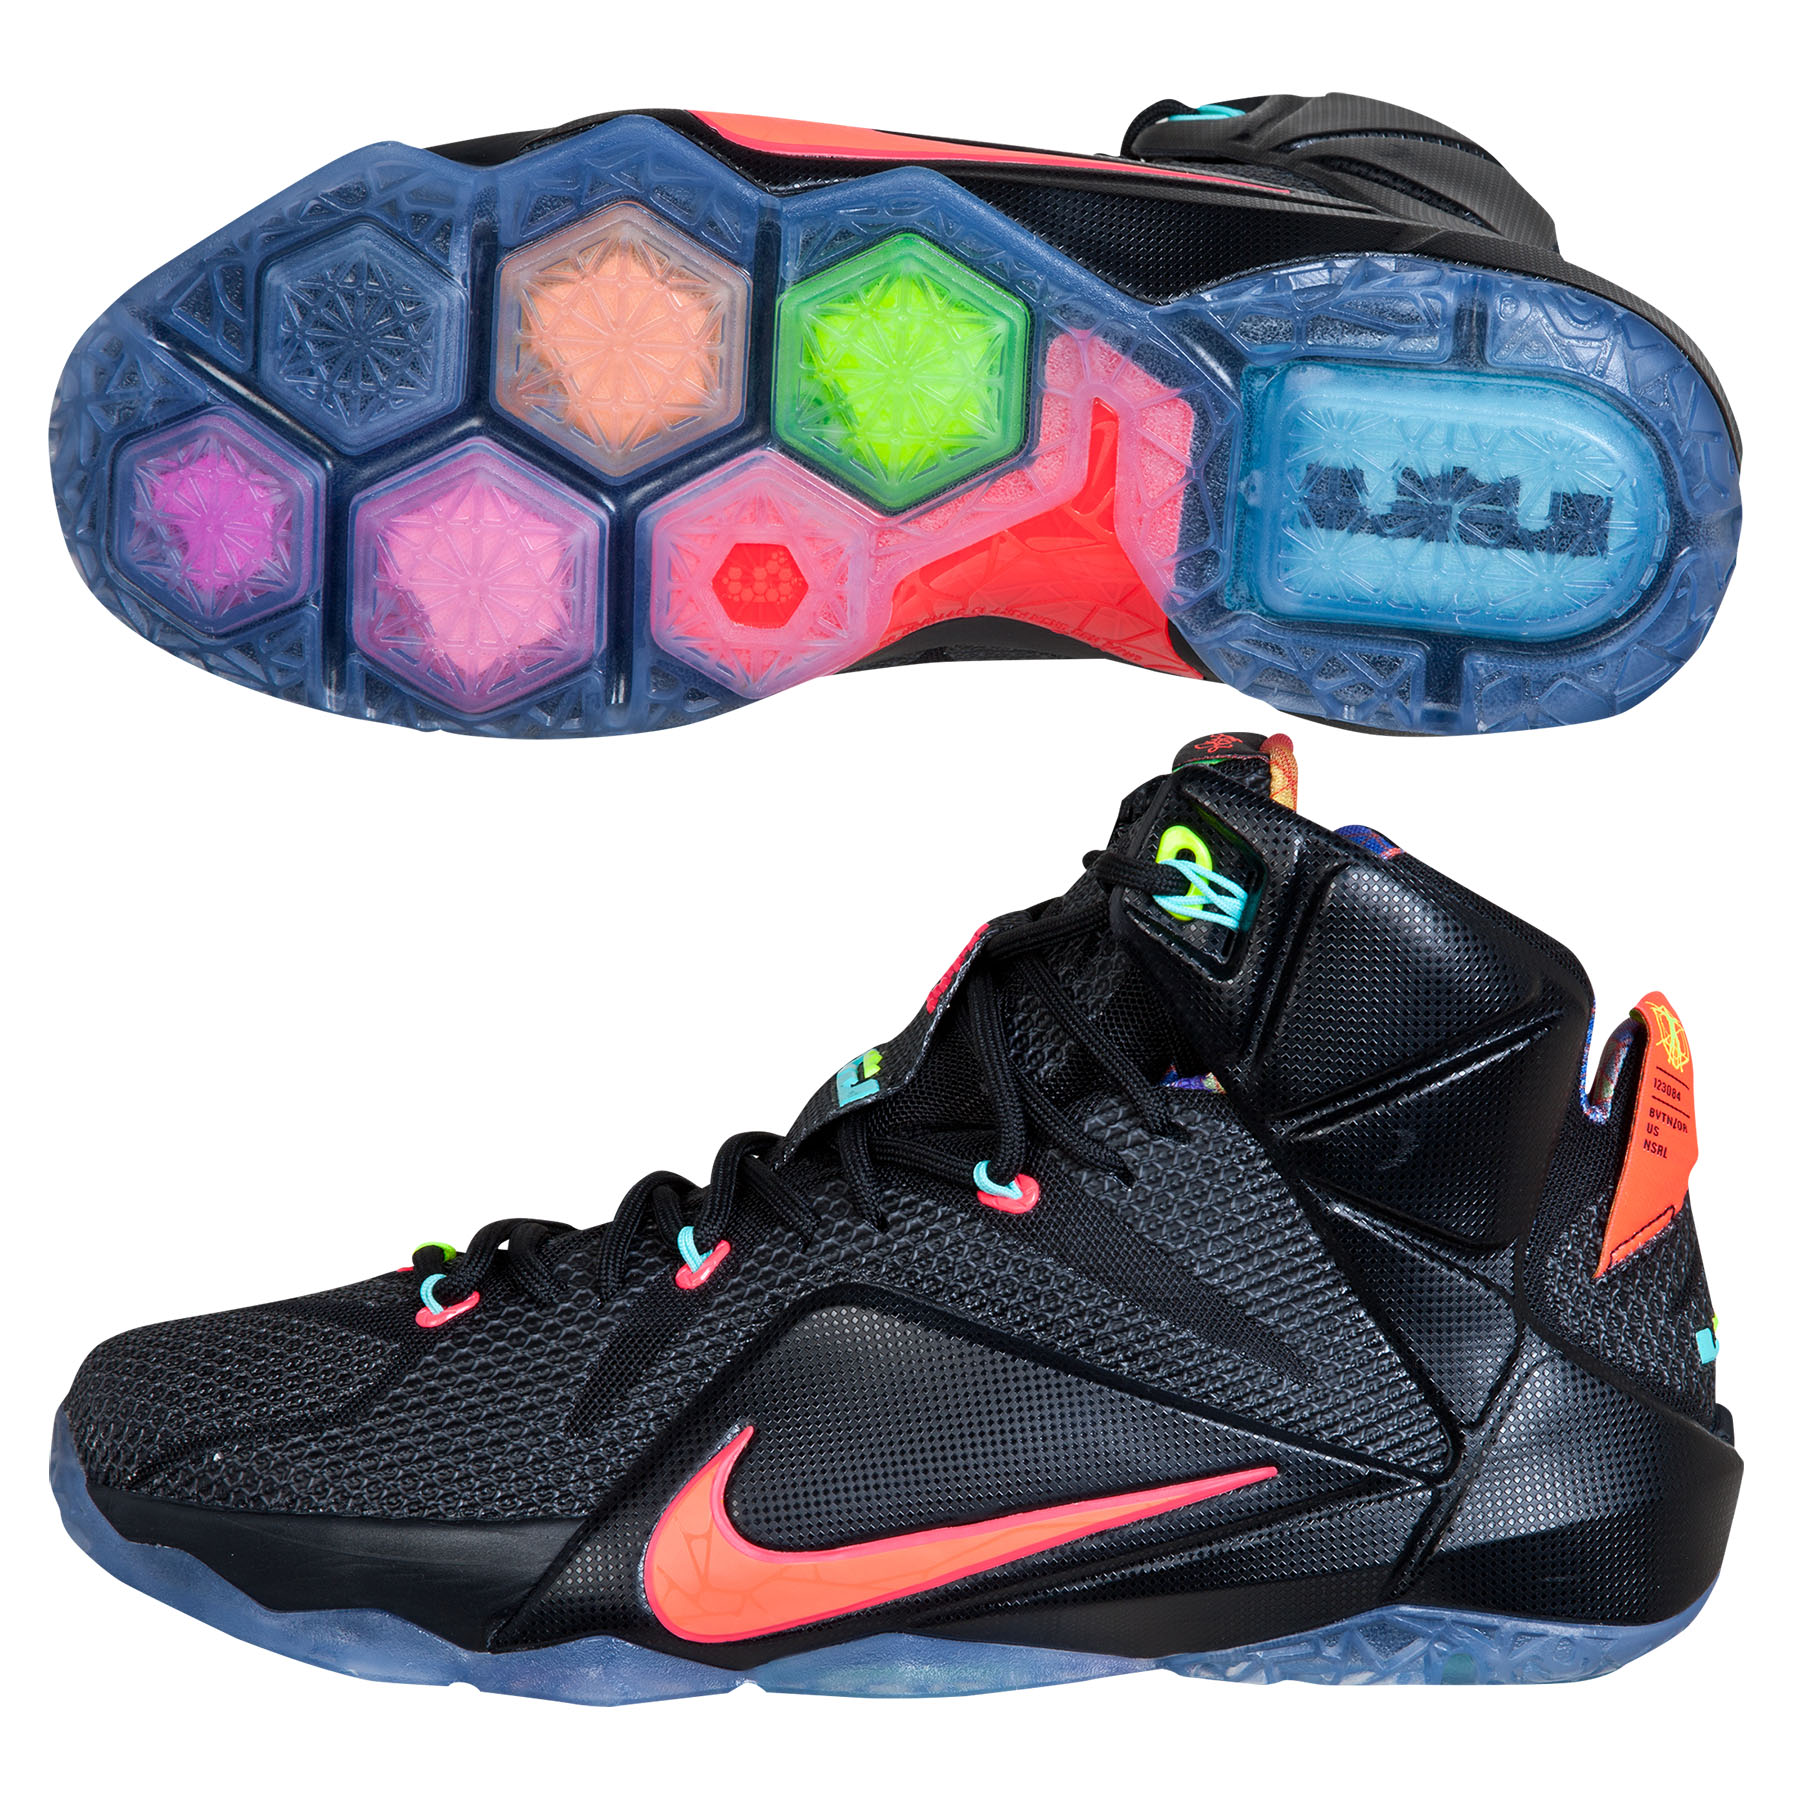 Nike Lebron XII Basketball Shoe - Data